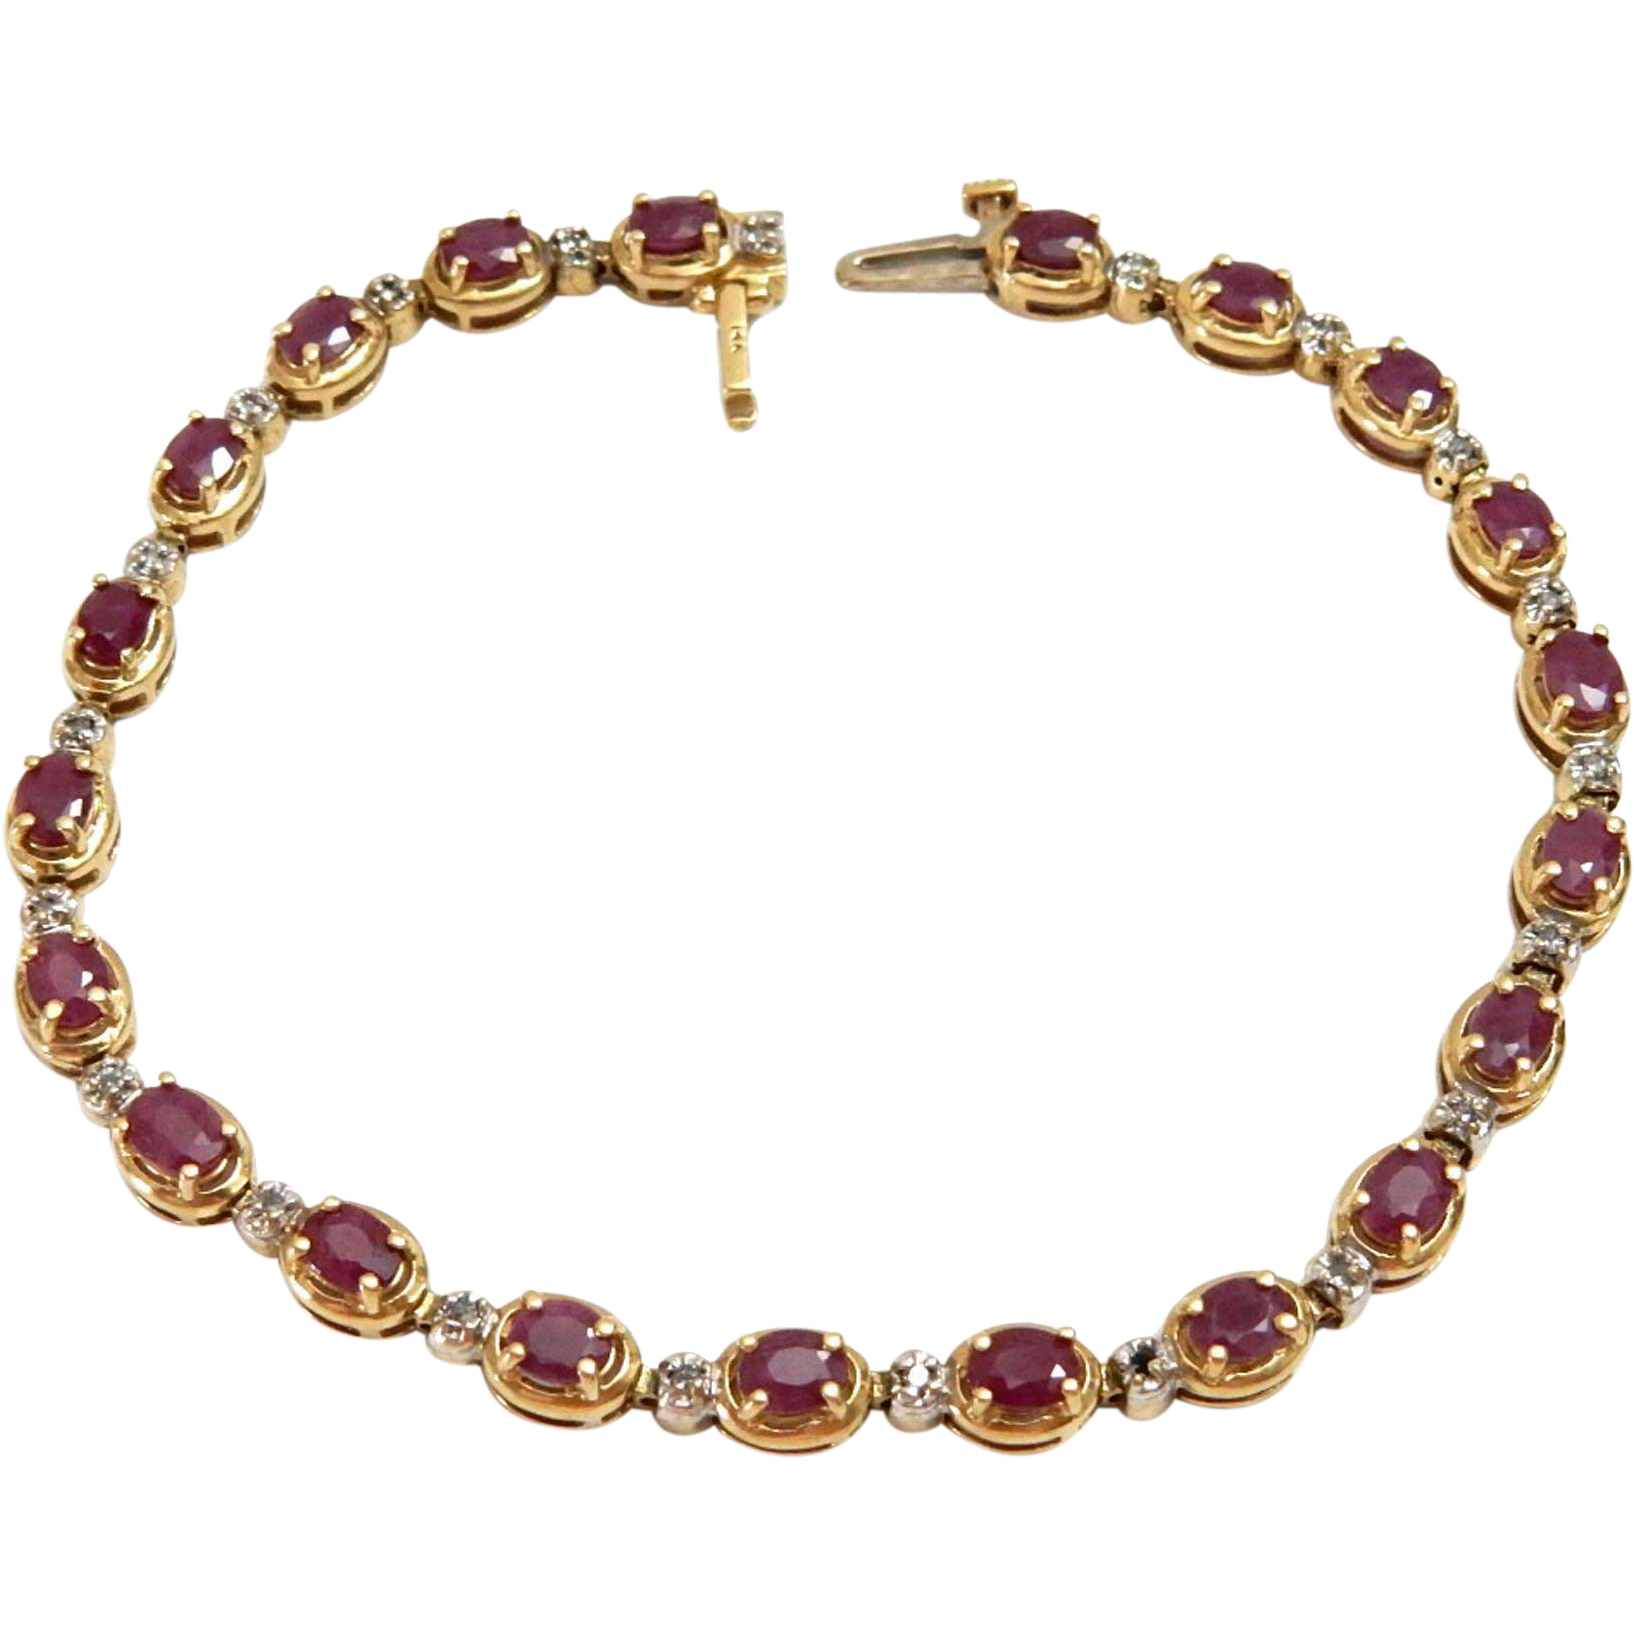 14k gold link bracelet with ruby and accents from